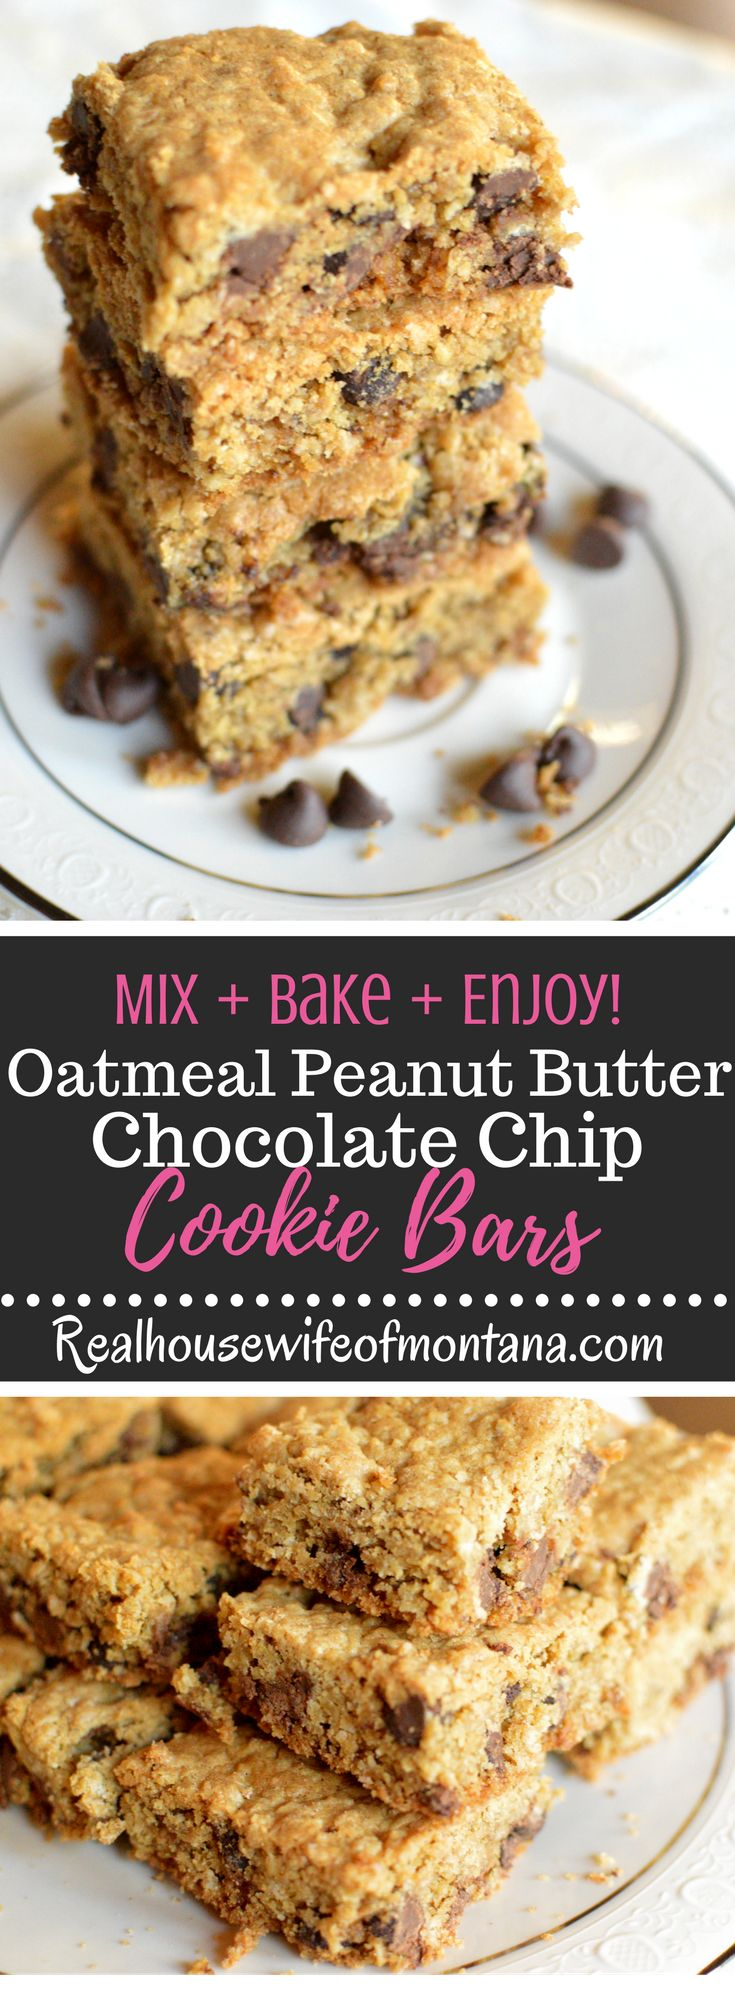 Oatmeal Peanut Butter Chocolate Chip Cookie Bars – Chewy and deliciously simple Cookie Bars with peanut butter, oatmeal and melty chocolate chips. My new go-to for when I want cookies but don't want to have to bake batch after batch! | Realhousewifeofmontana.com |